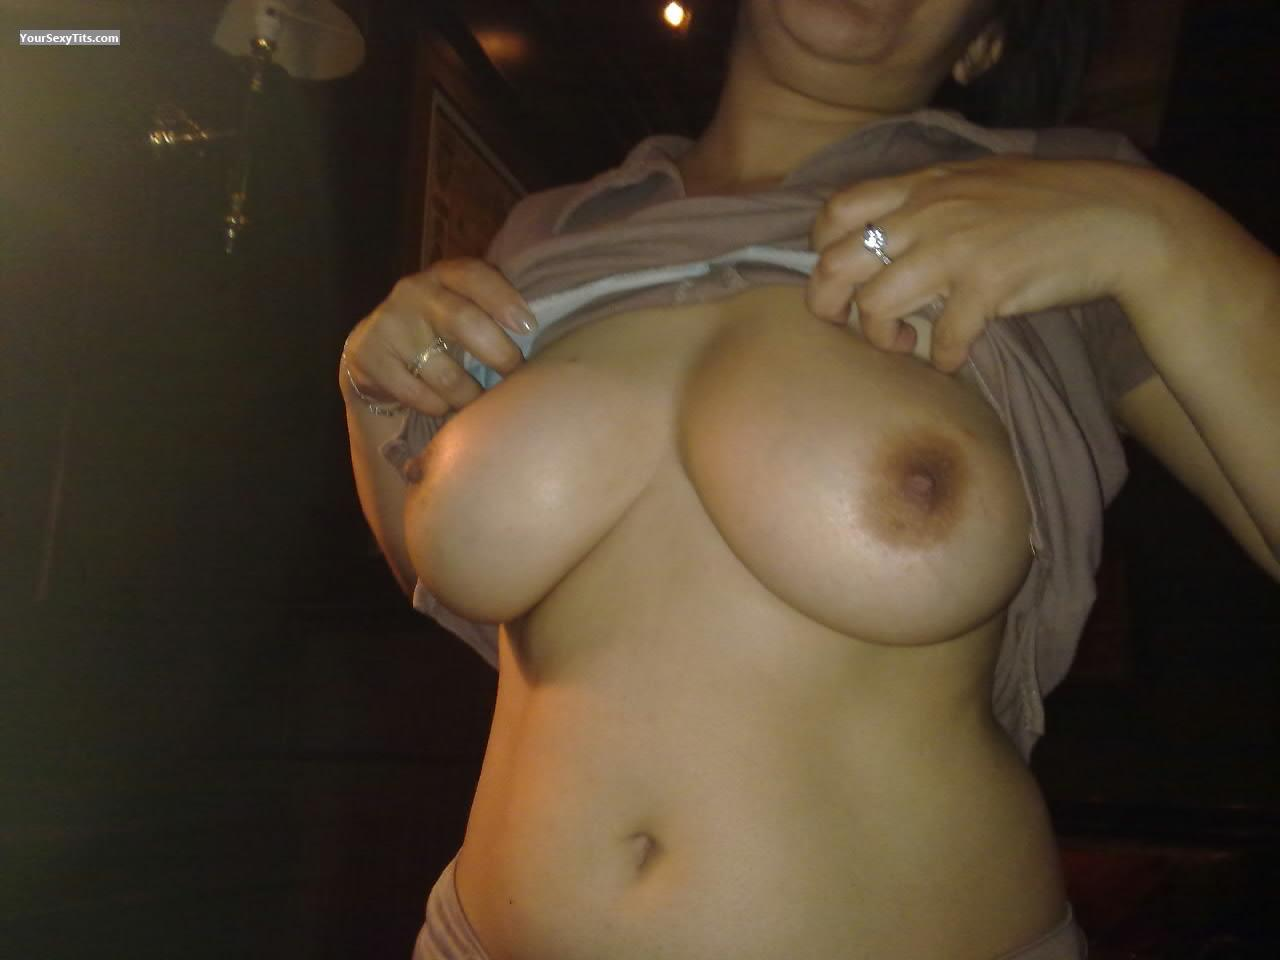 Tit Flash: Big Tits - Zinzin from France